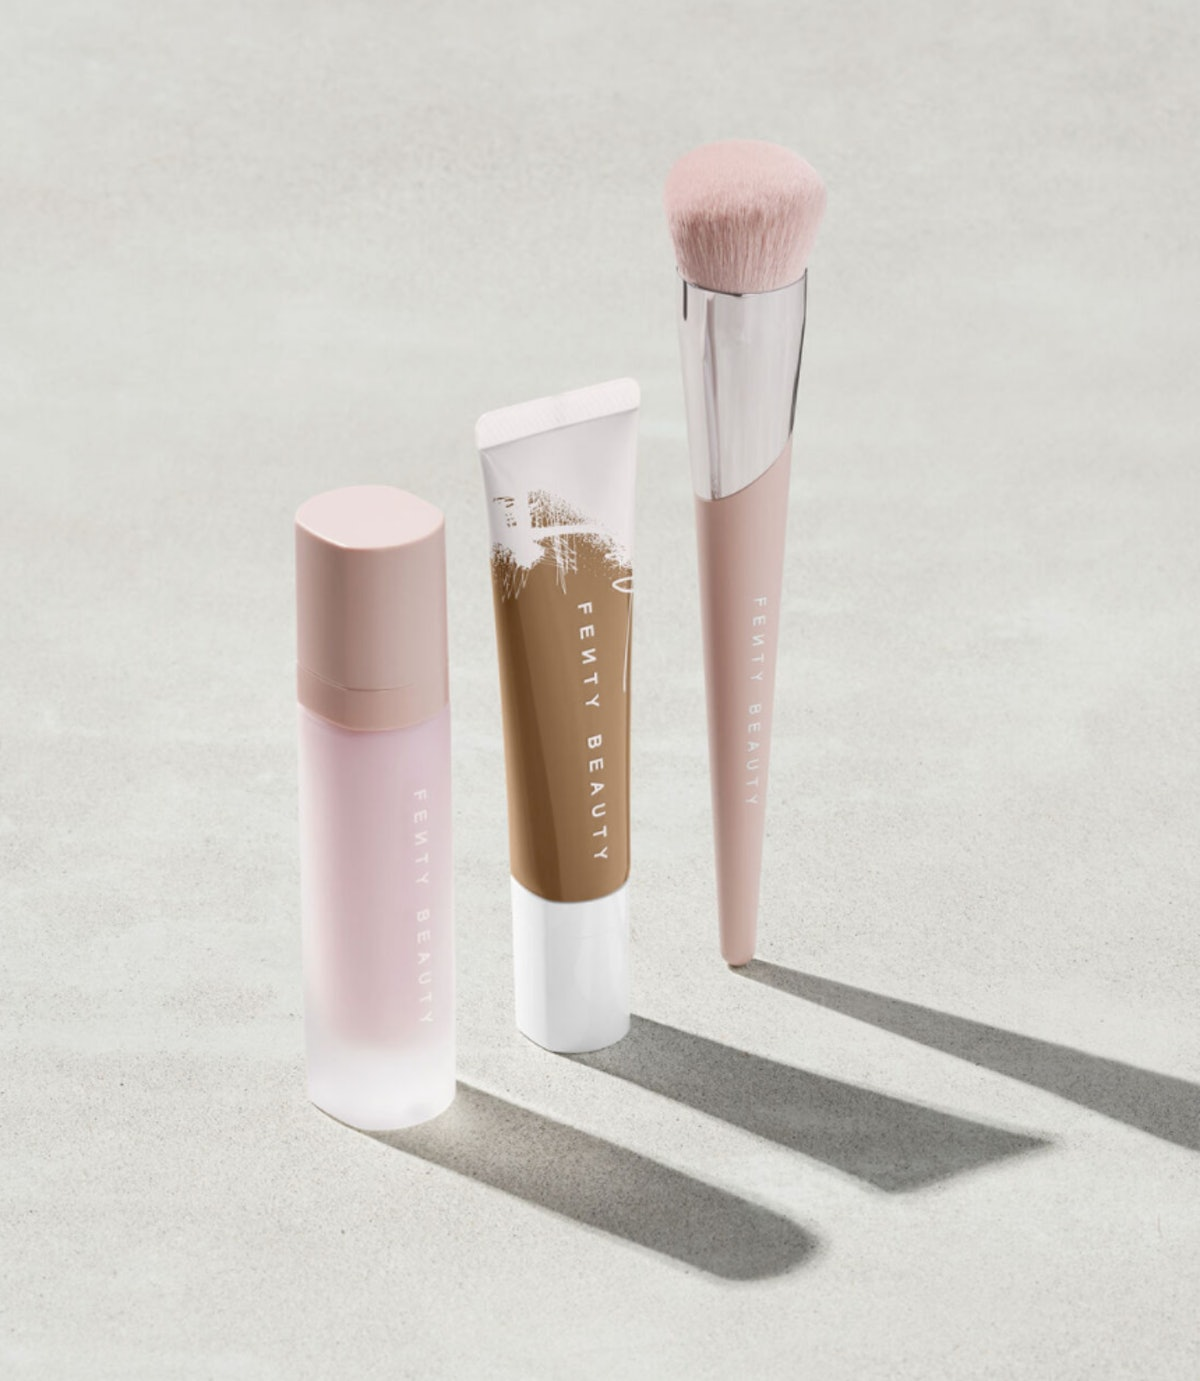 Fenty Beauty Hydration Complexion Essentials With Brush